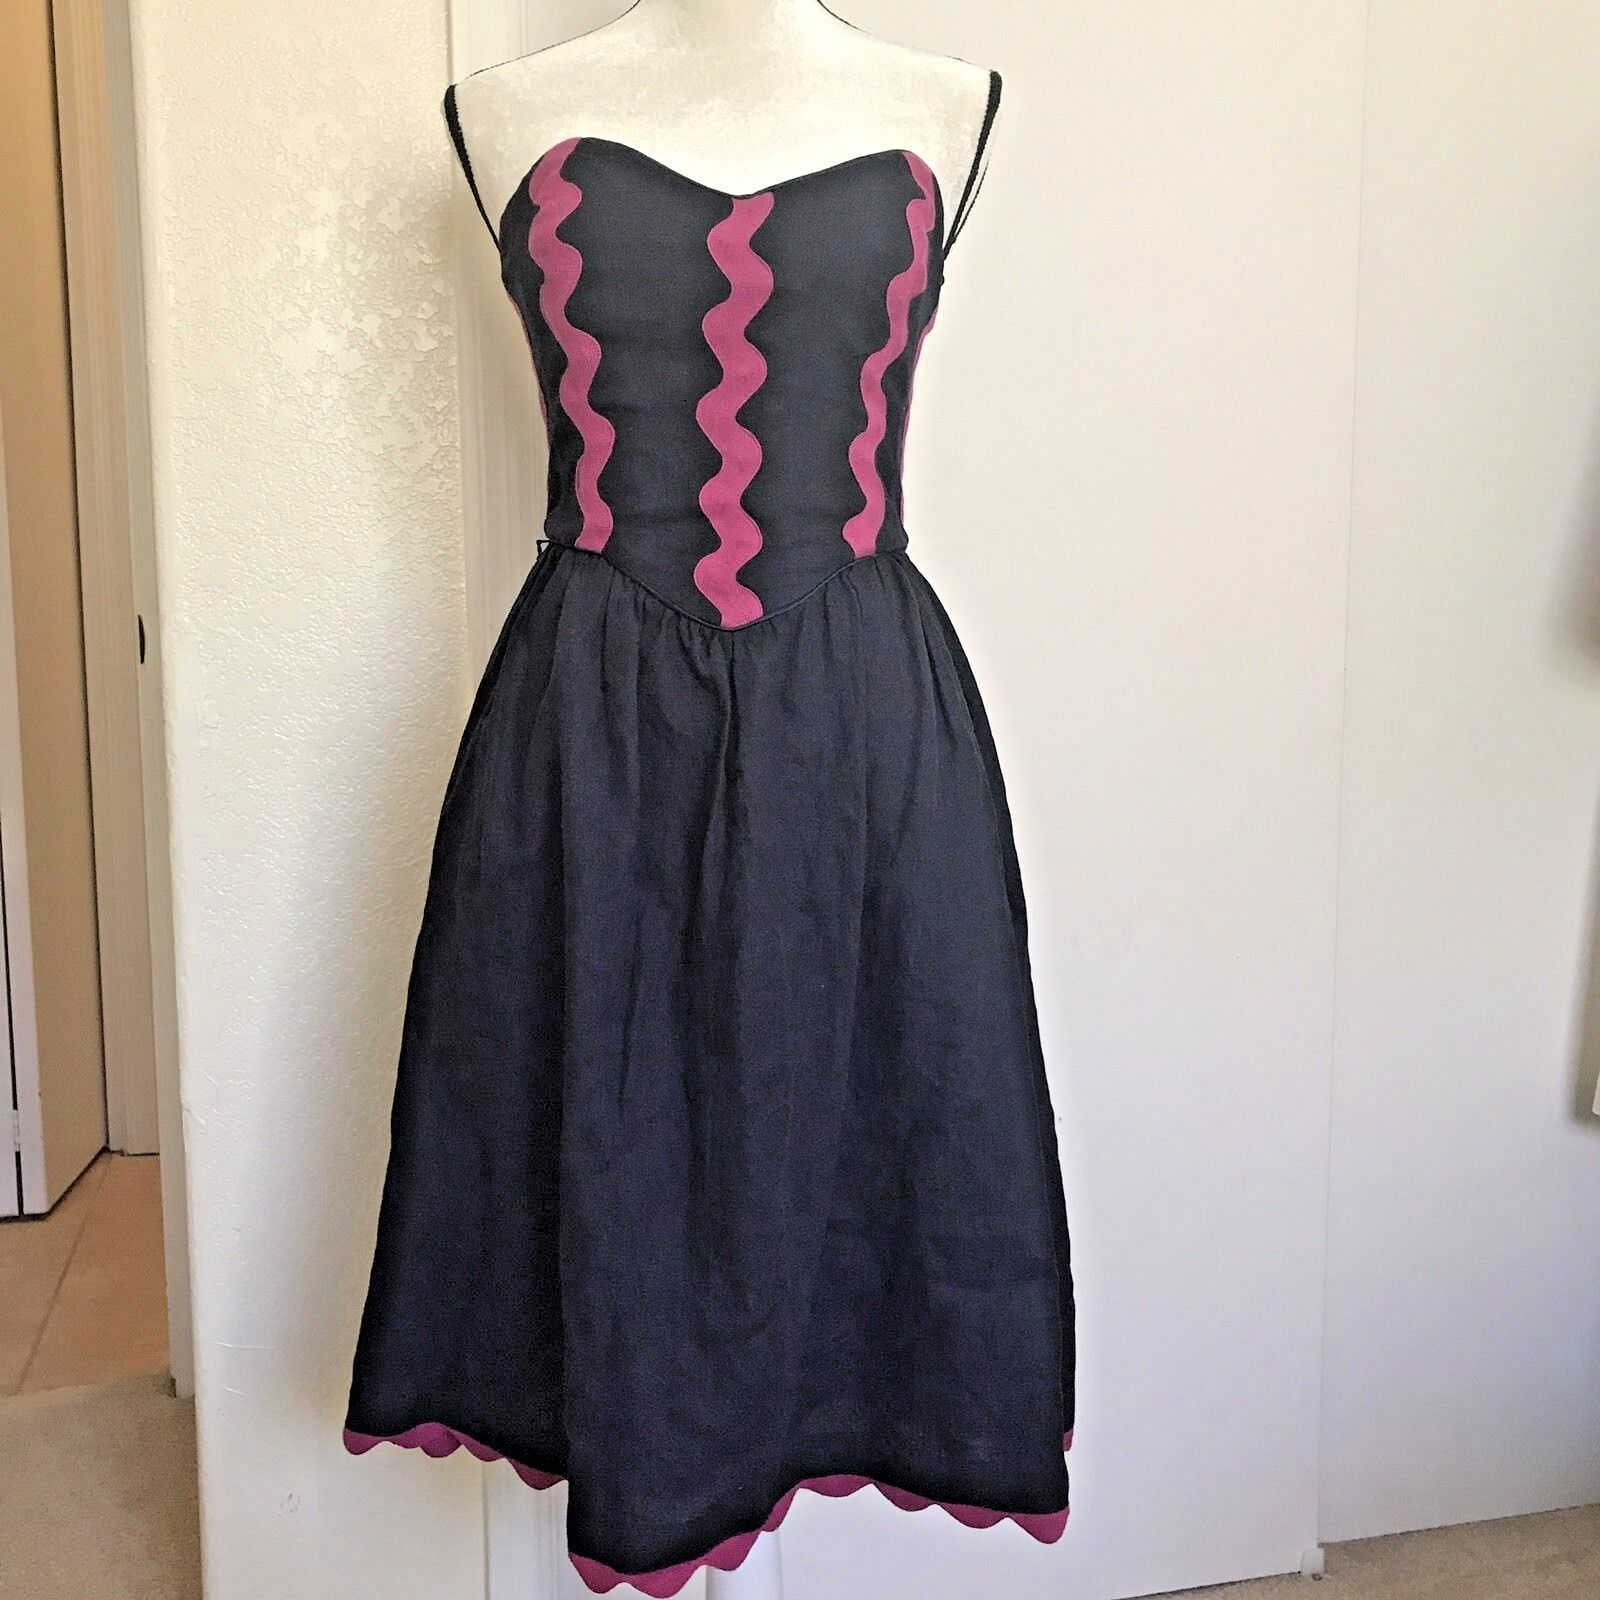 NWT BETSEY JOHNSON Navy Blau Linen Dress Rosa Trim Sz 6 Strapless Fit & Flare